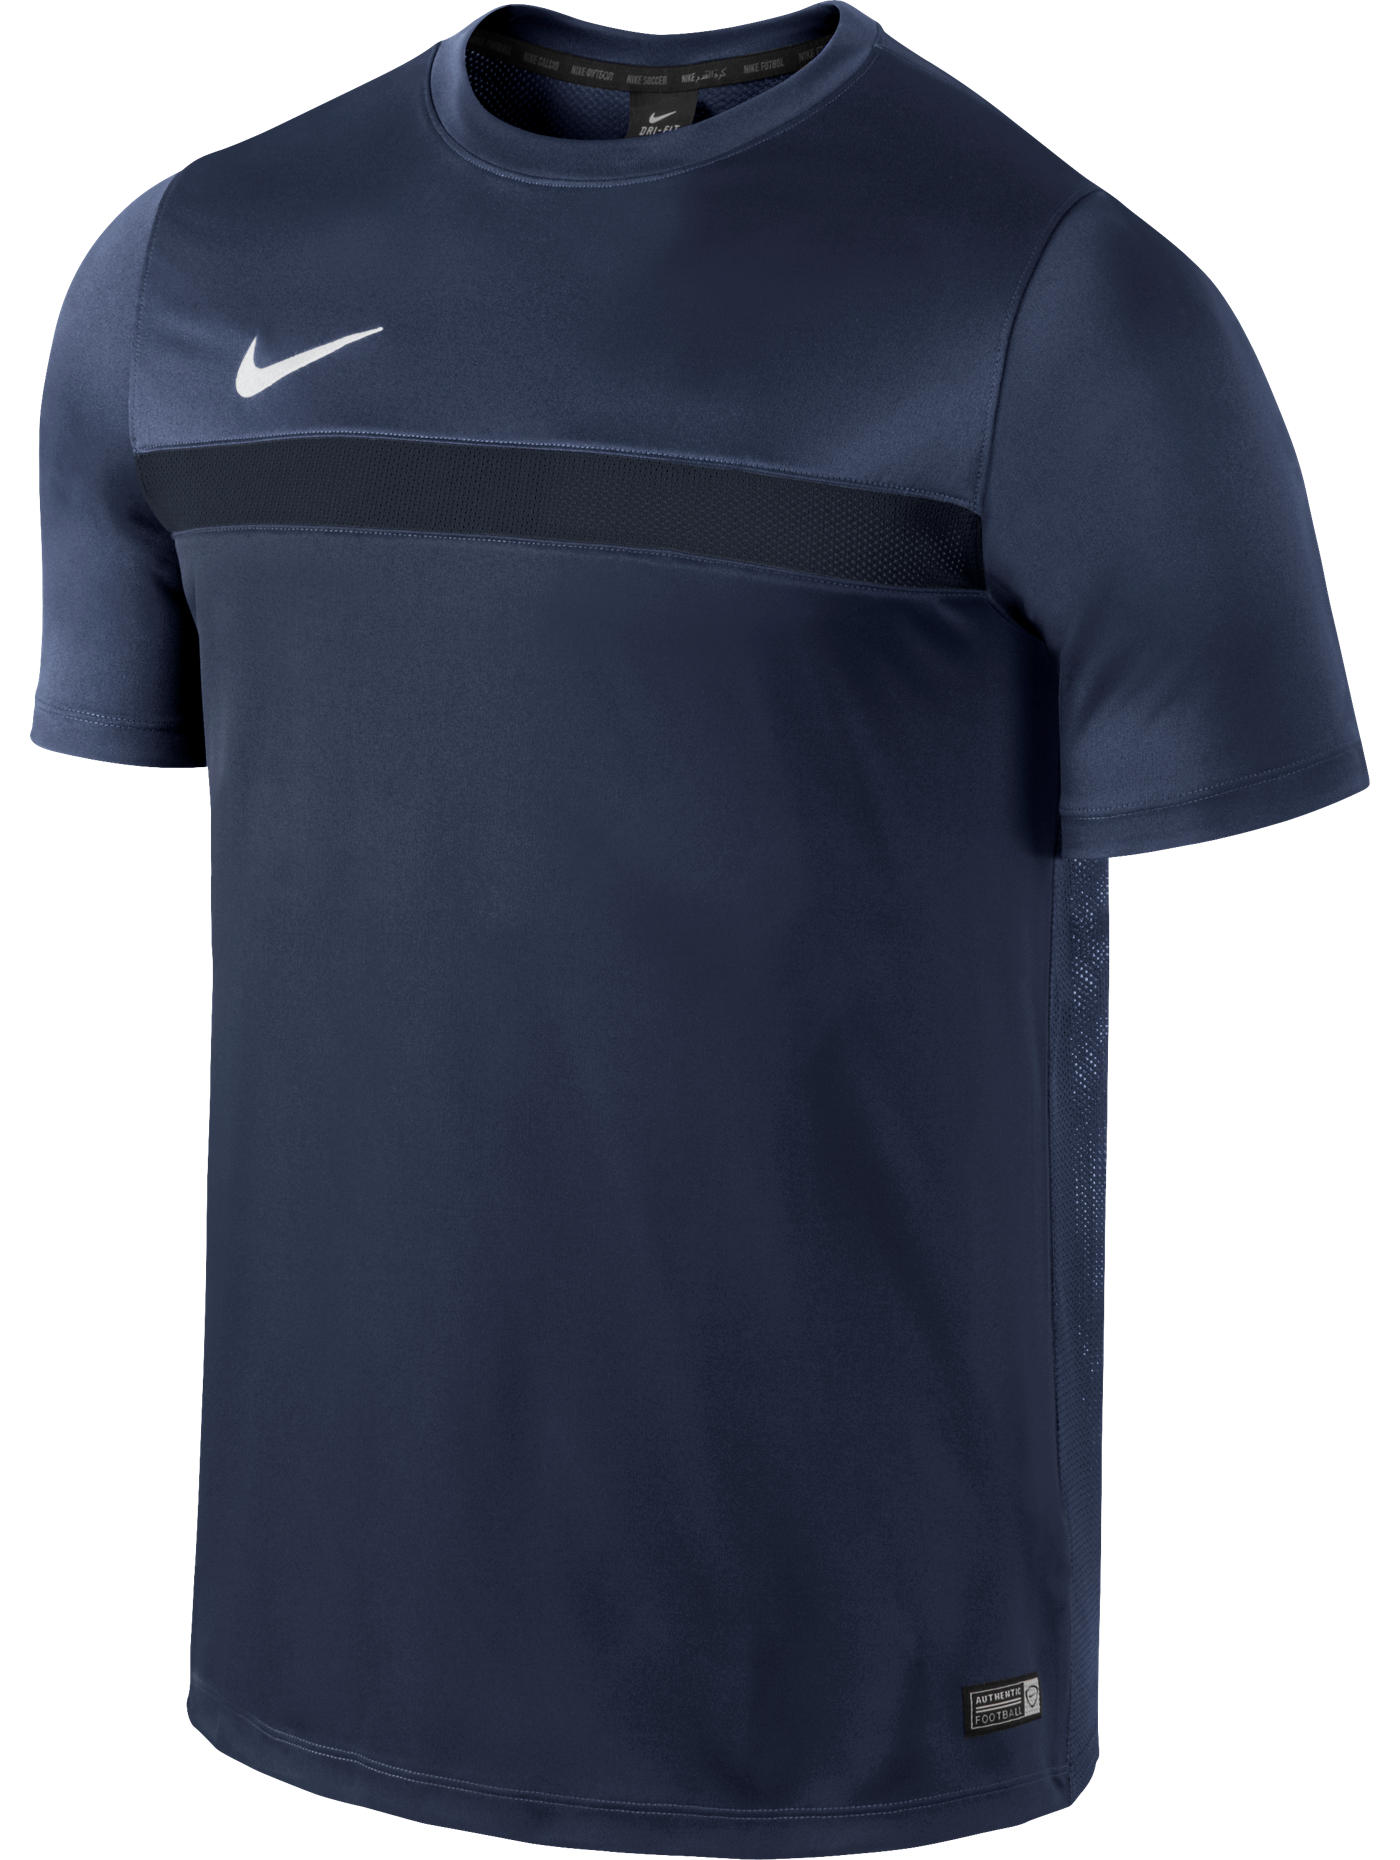 Academy ss top blue navy nike training shirt maglia 2015 for Navy blue and white nike shirt